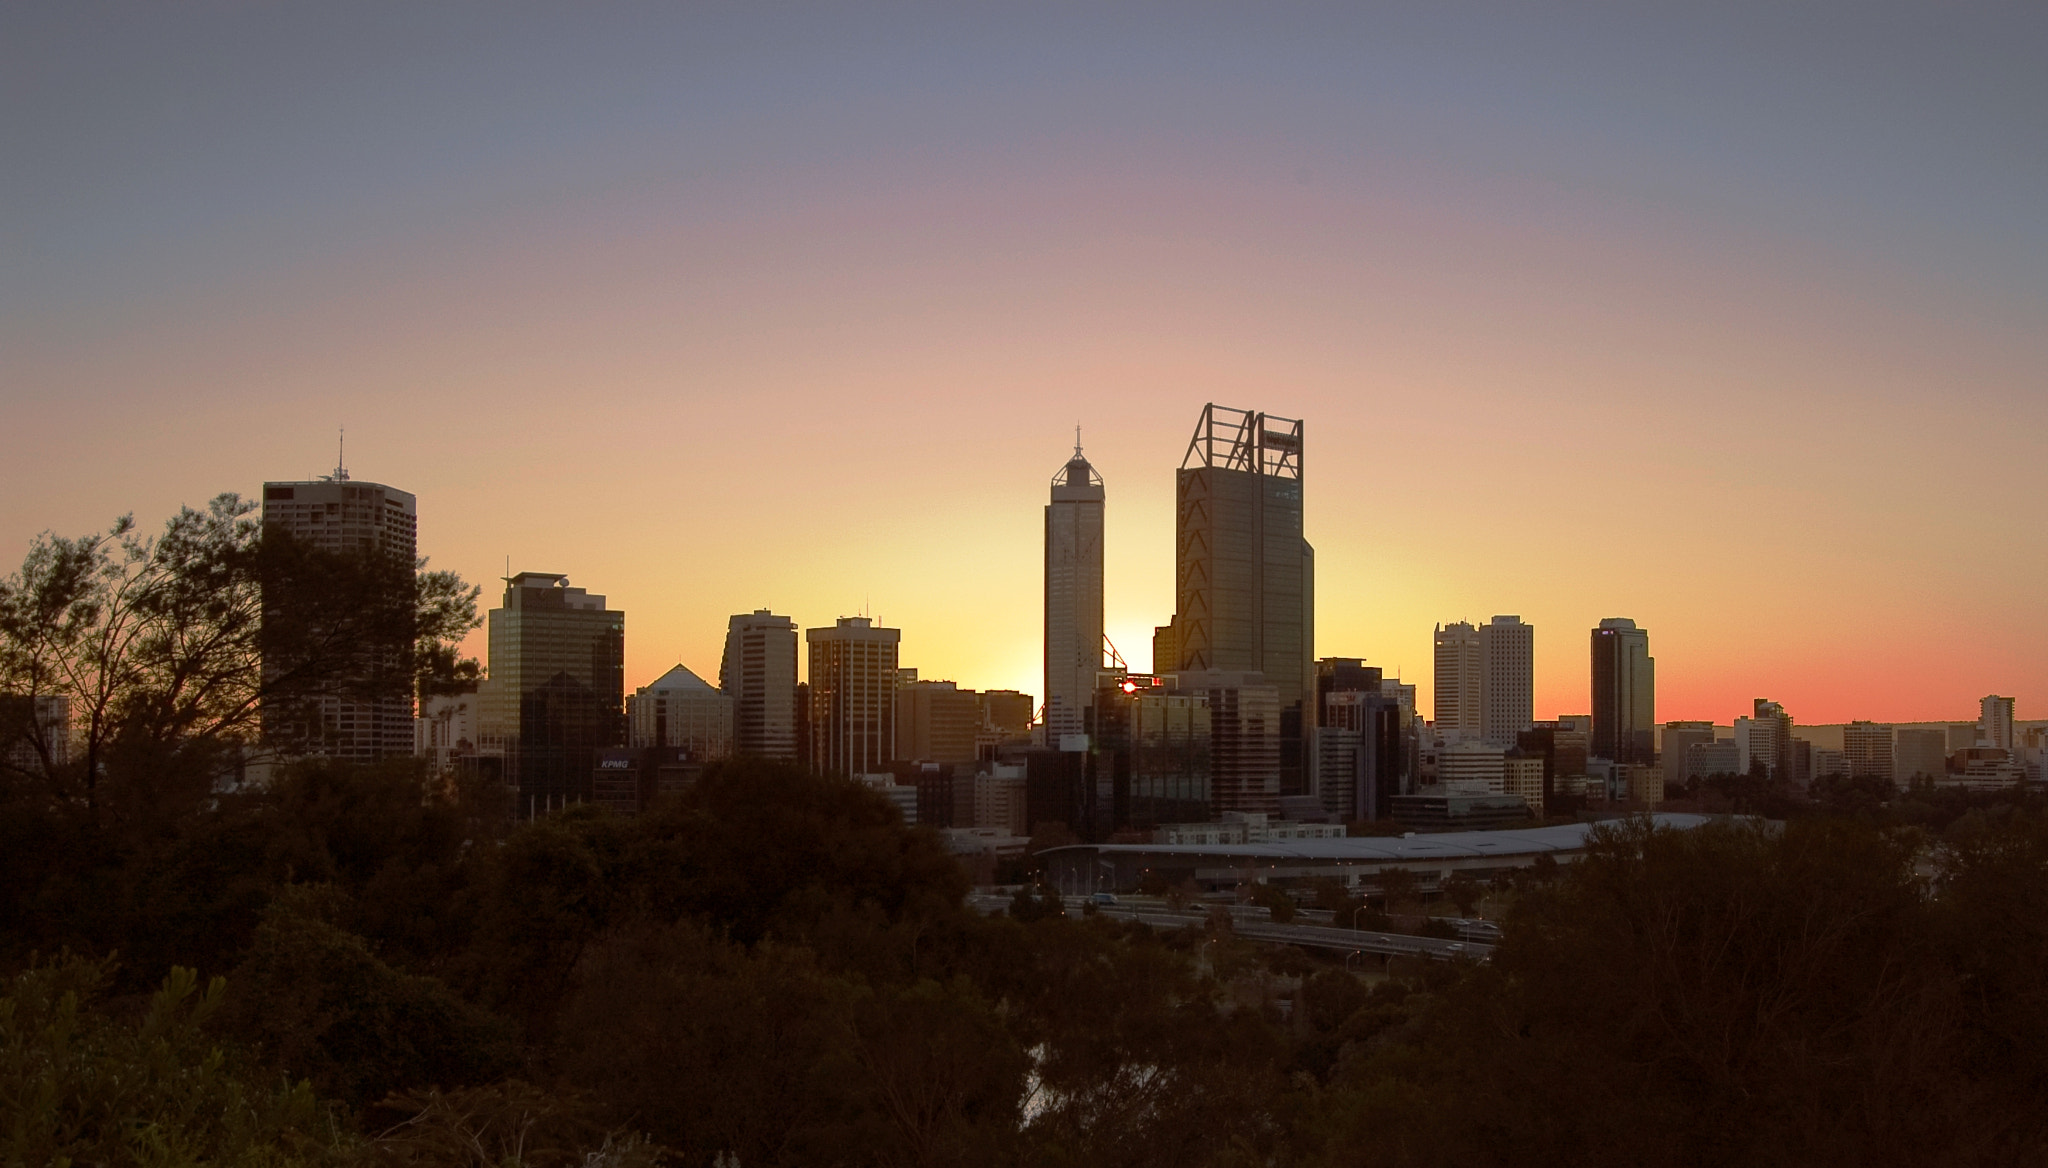 Photograph City sunrise by Peter Field on 500px